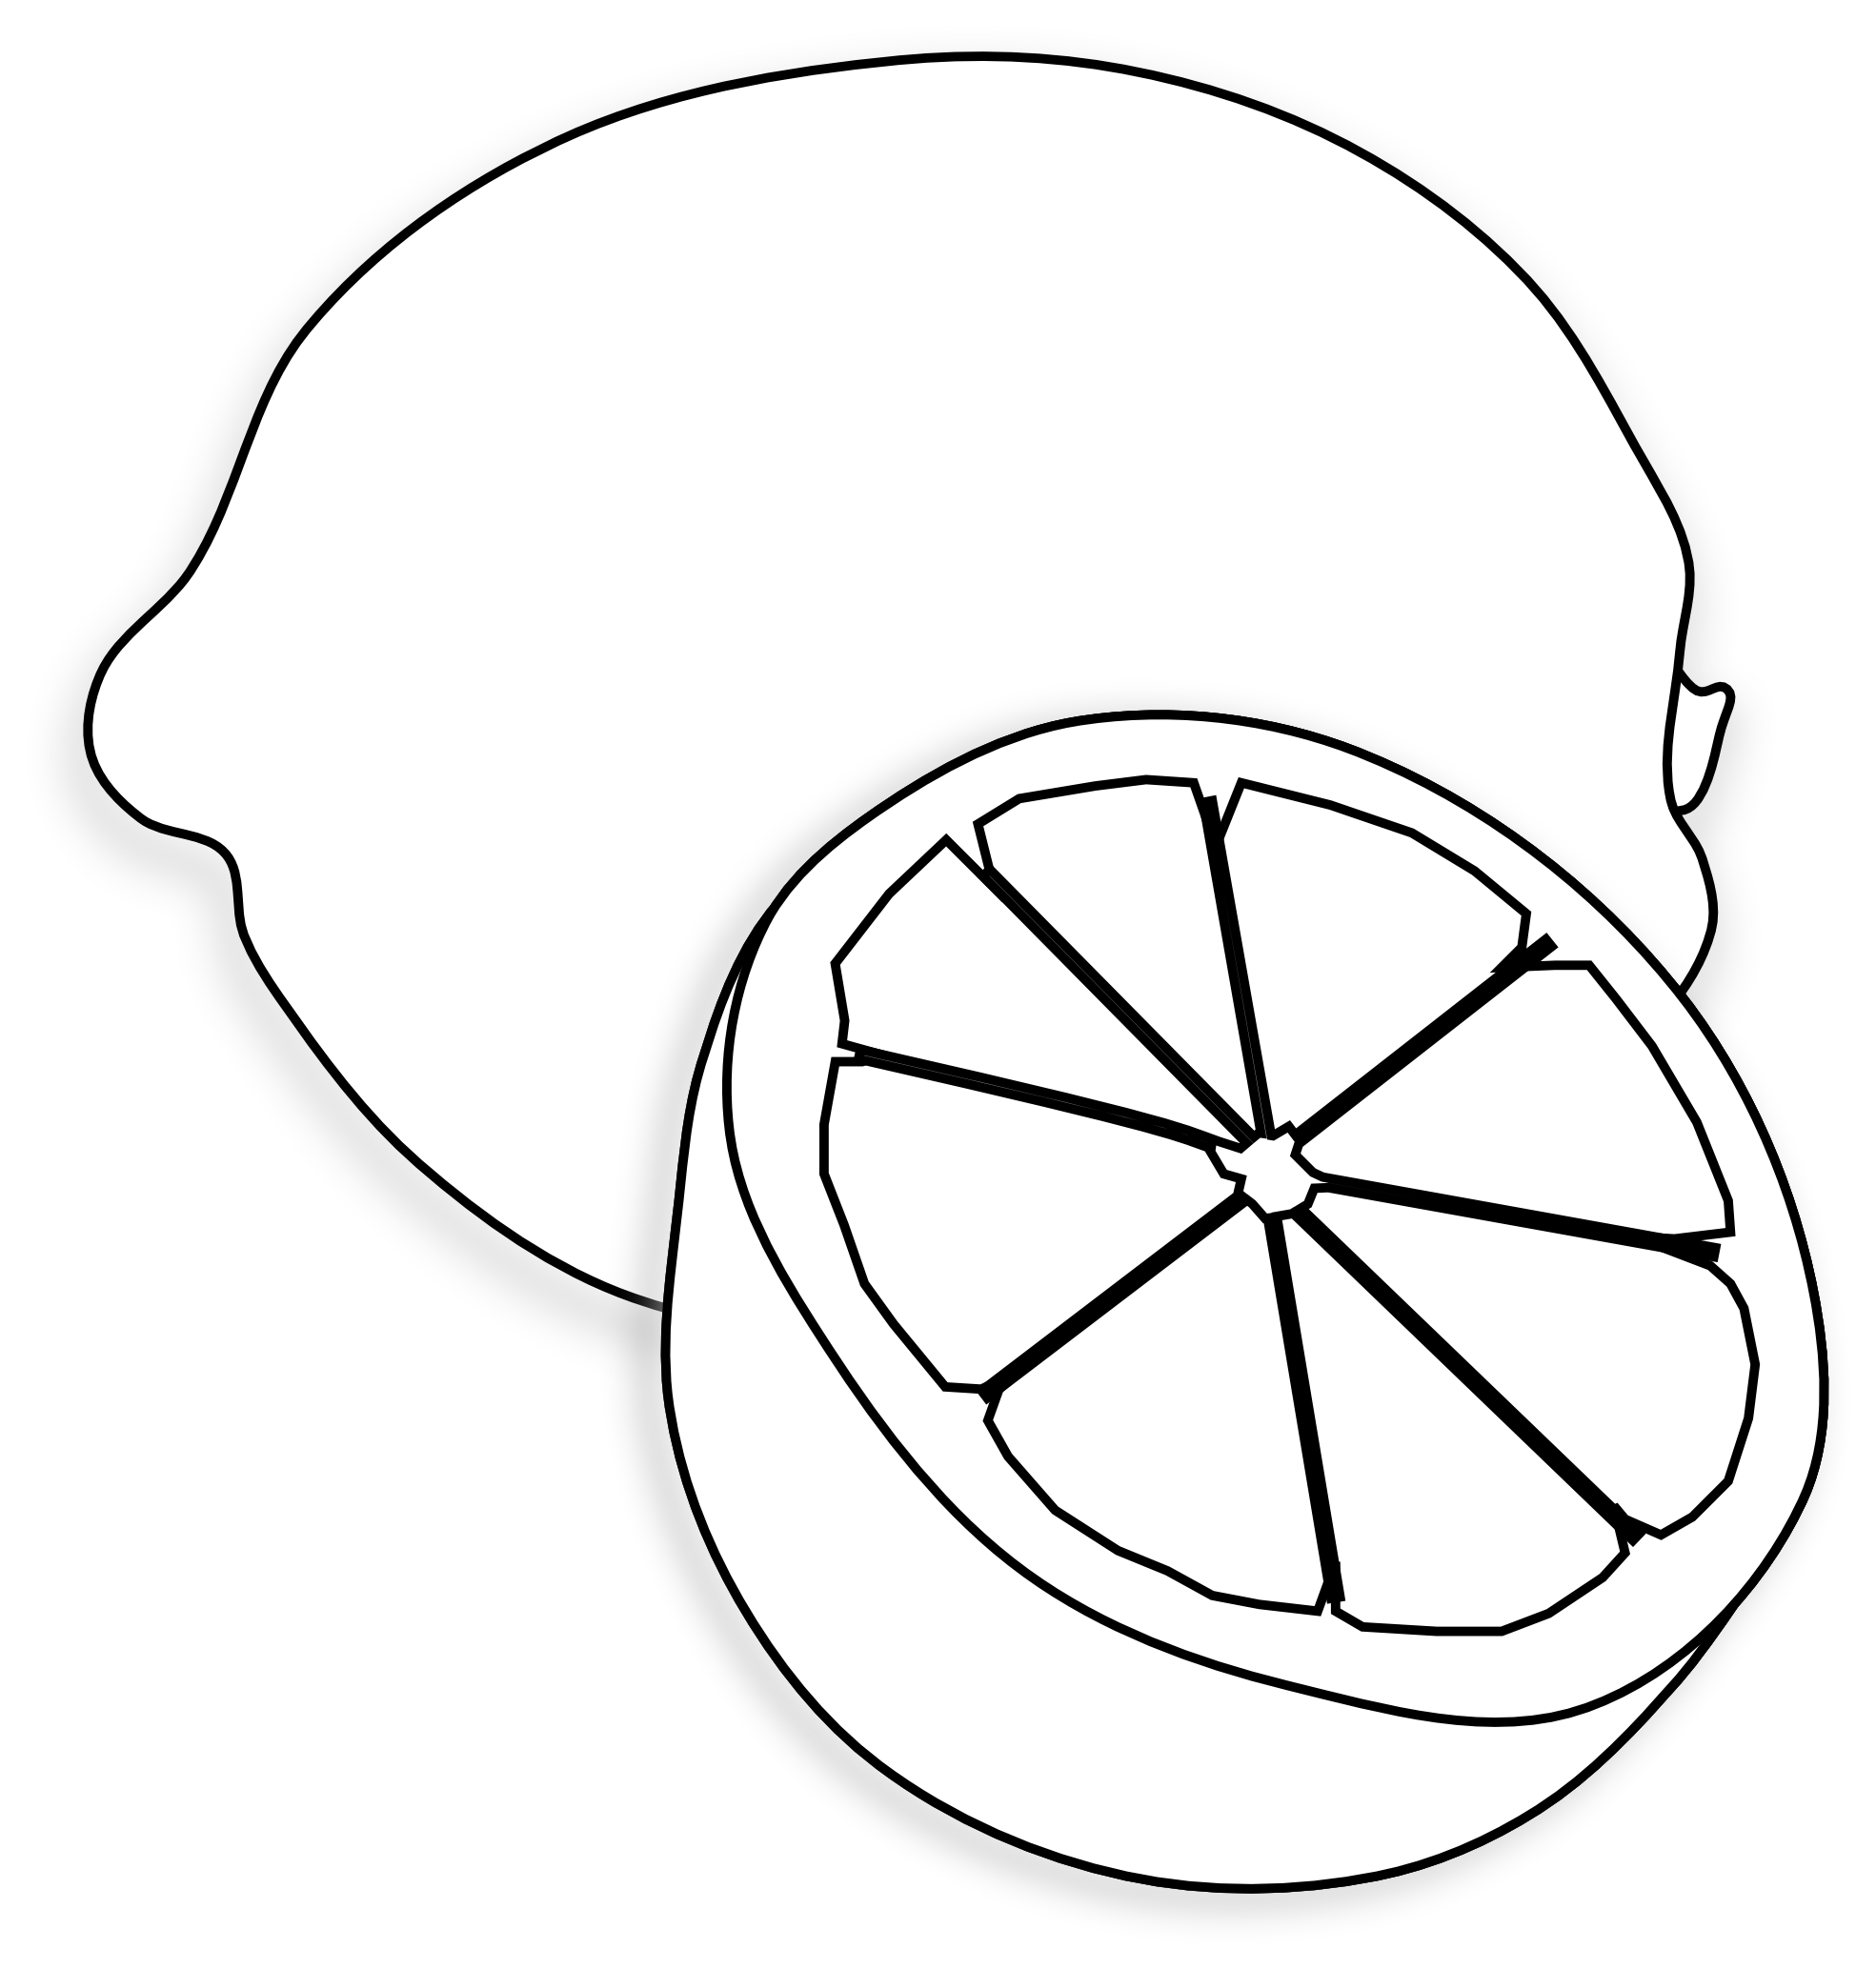 Lemon with leaf clipart black and white image download Lemon clipart black and white #18 | ΕΣΠΕΡΙΔΟΕΙΔΗ | Drawings, Fruit ... image download